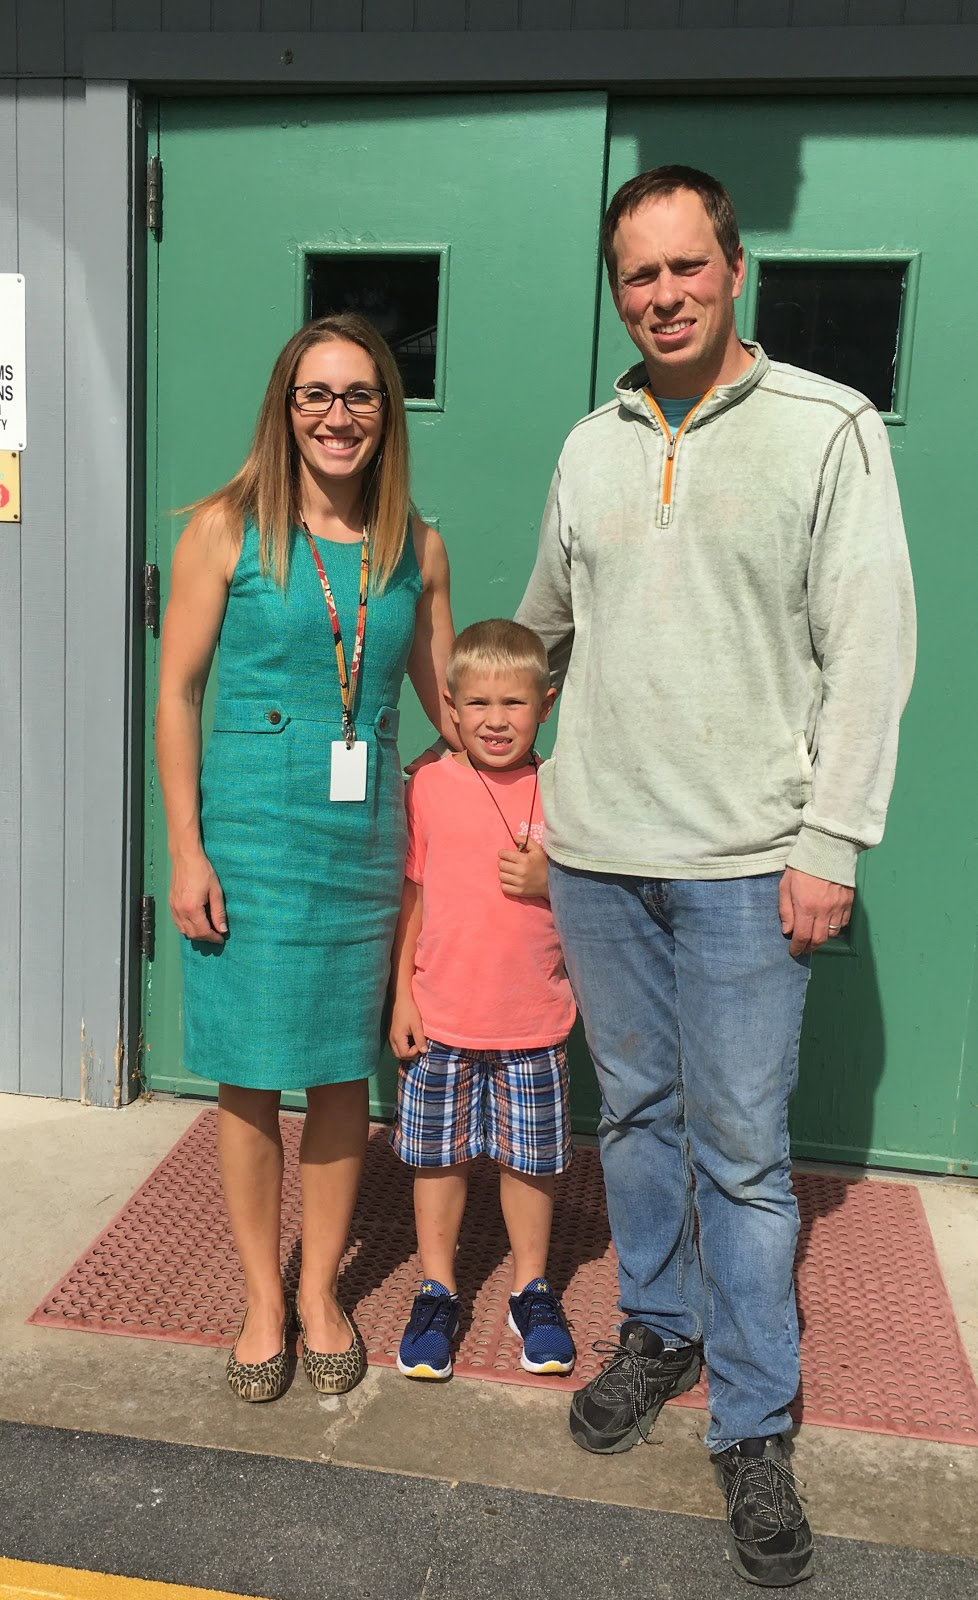 Bartash Family Photo in front of school doors